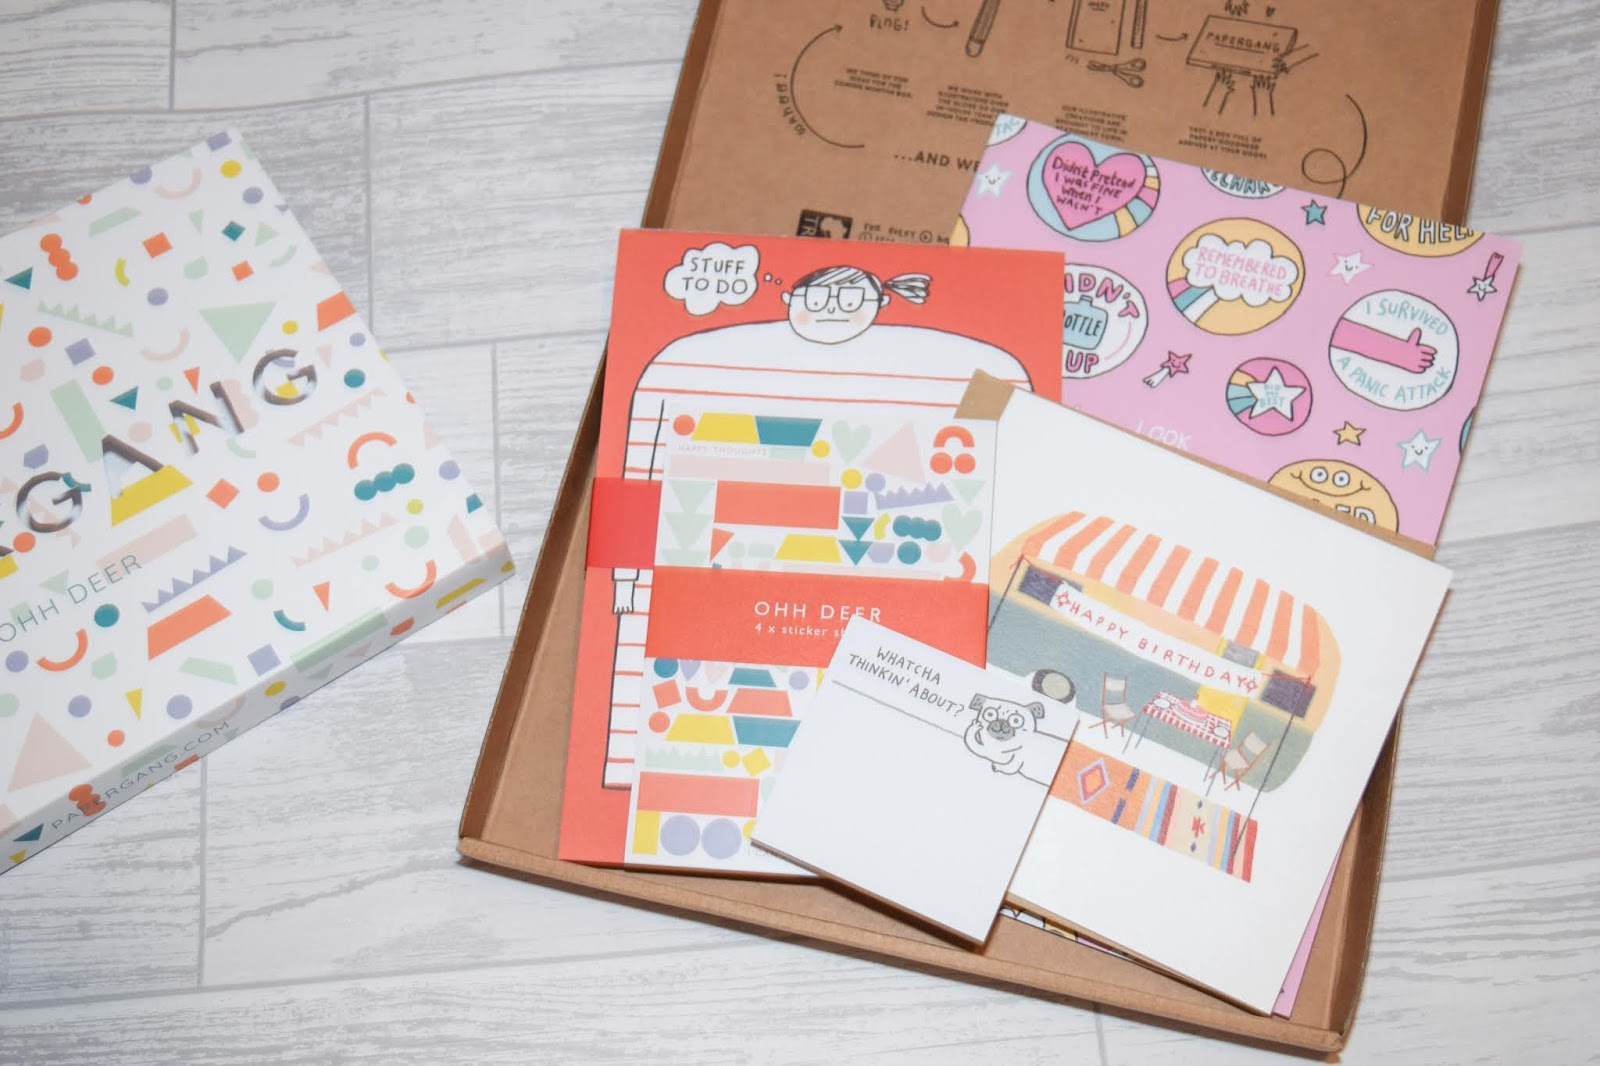 Overview contents of a mystery box of stationery including paper, stickers and a birthday card.